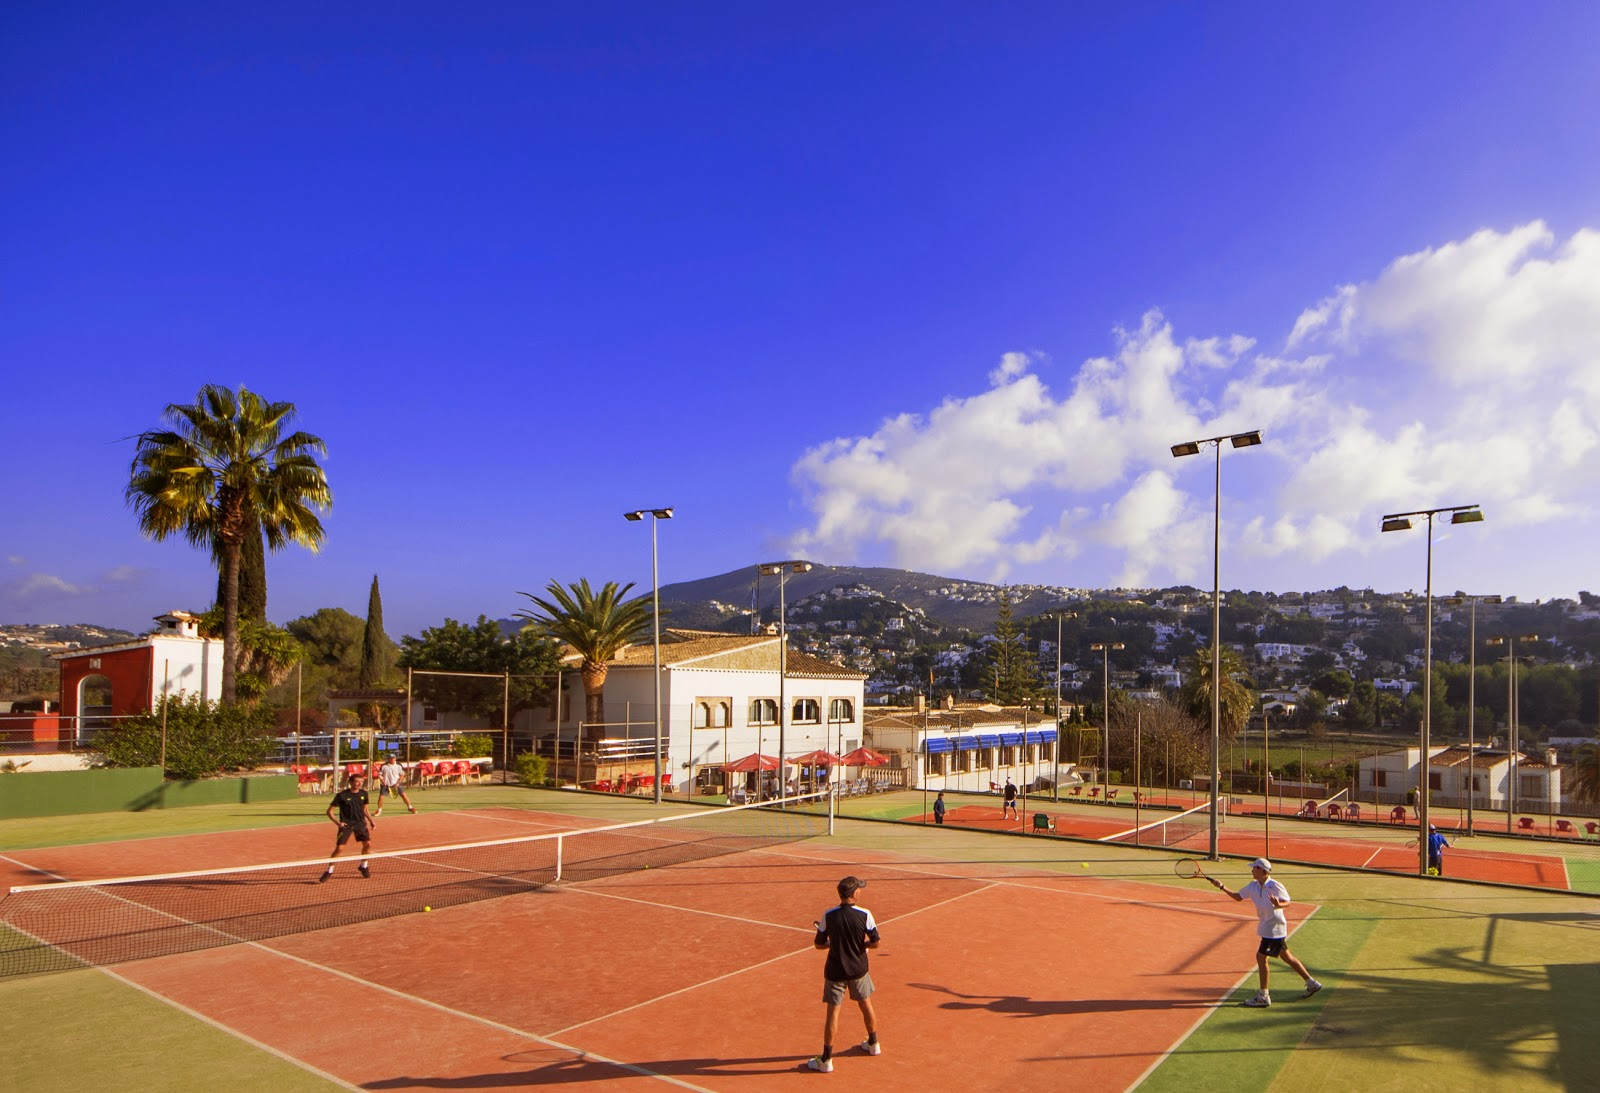 moraira vakantiegids sol park tennis en minigolf in moraira. Black Bedroom Furniture Sets. Home Design Ideas